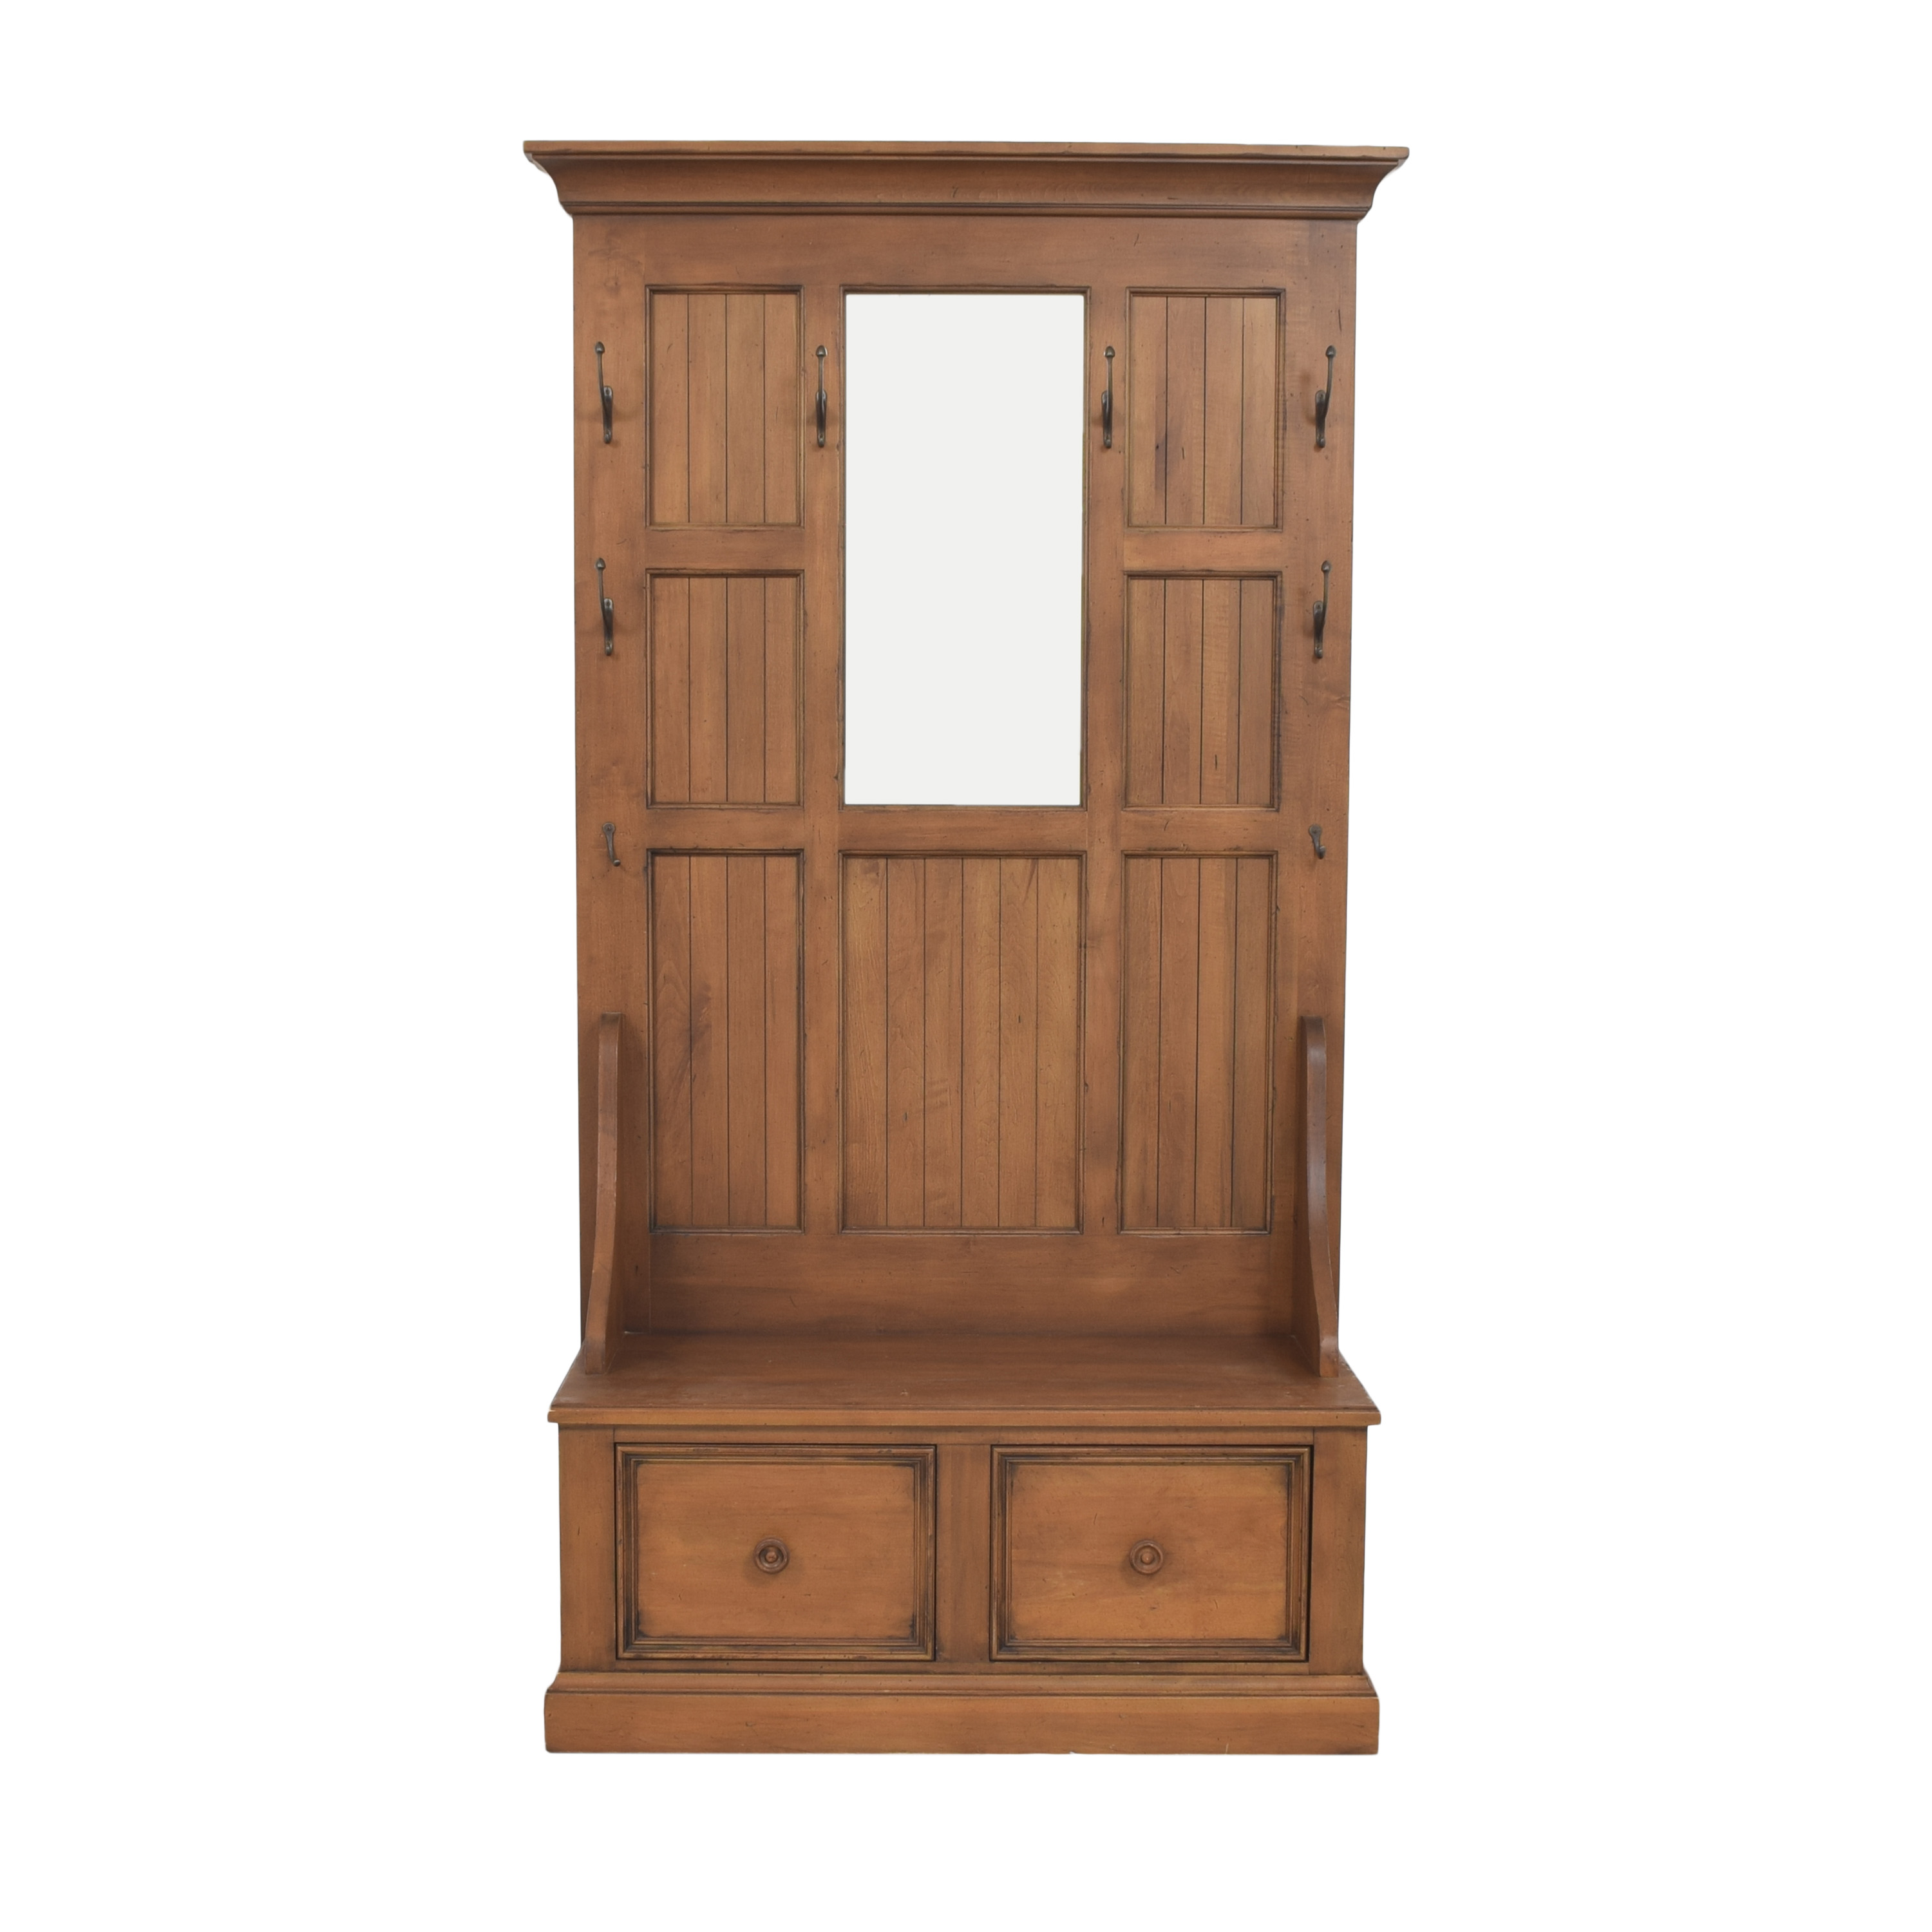 Ethan Allen New Country Logan Entryway Hall Tree / Storage